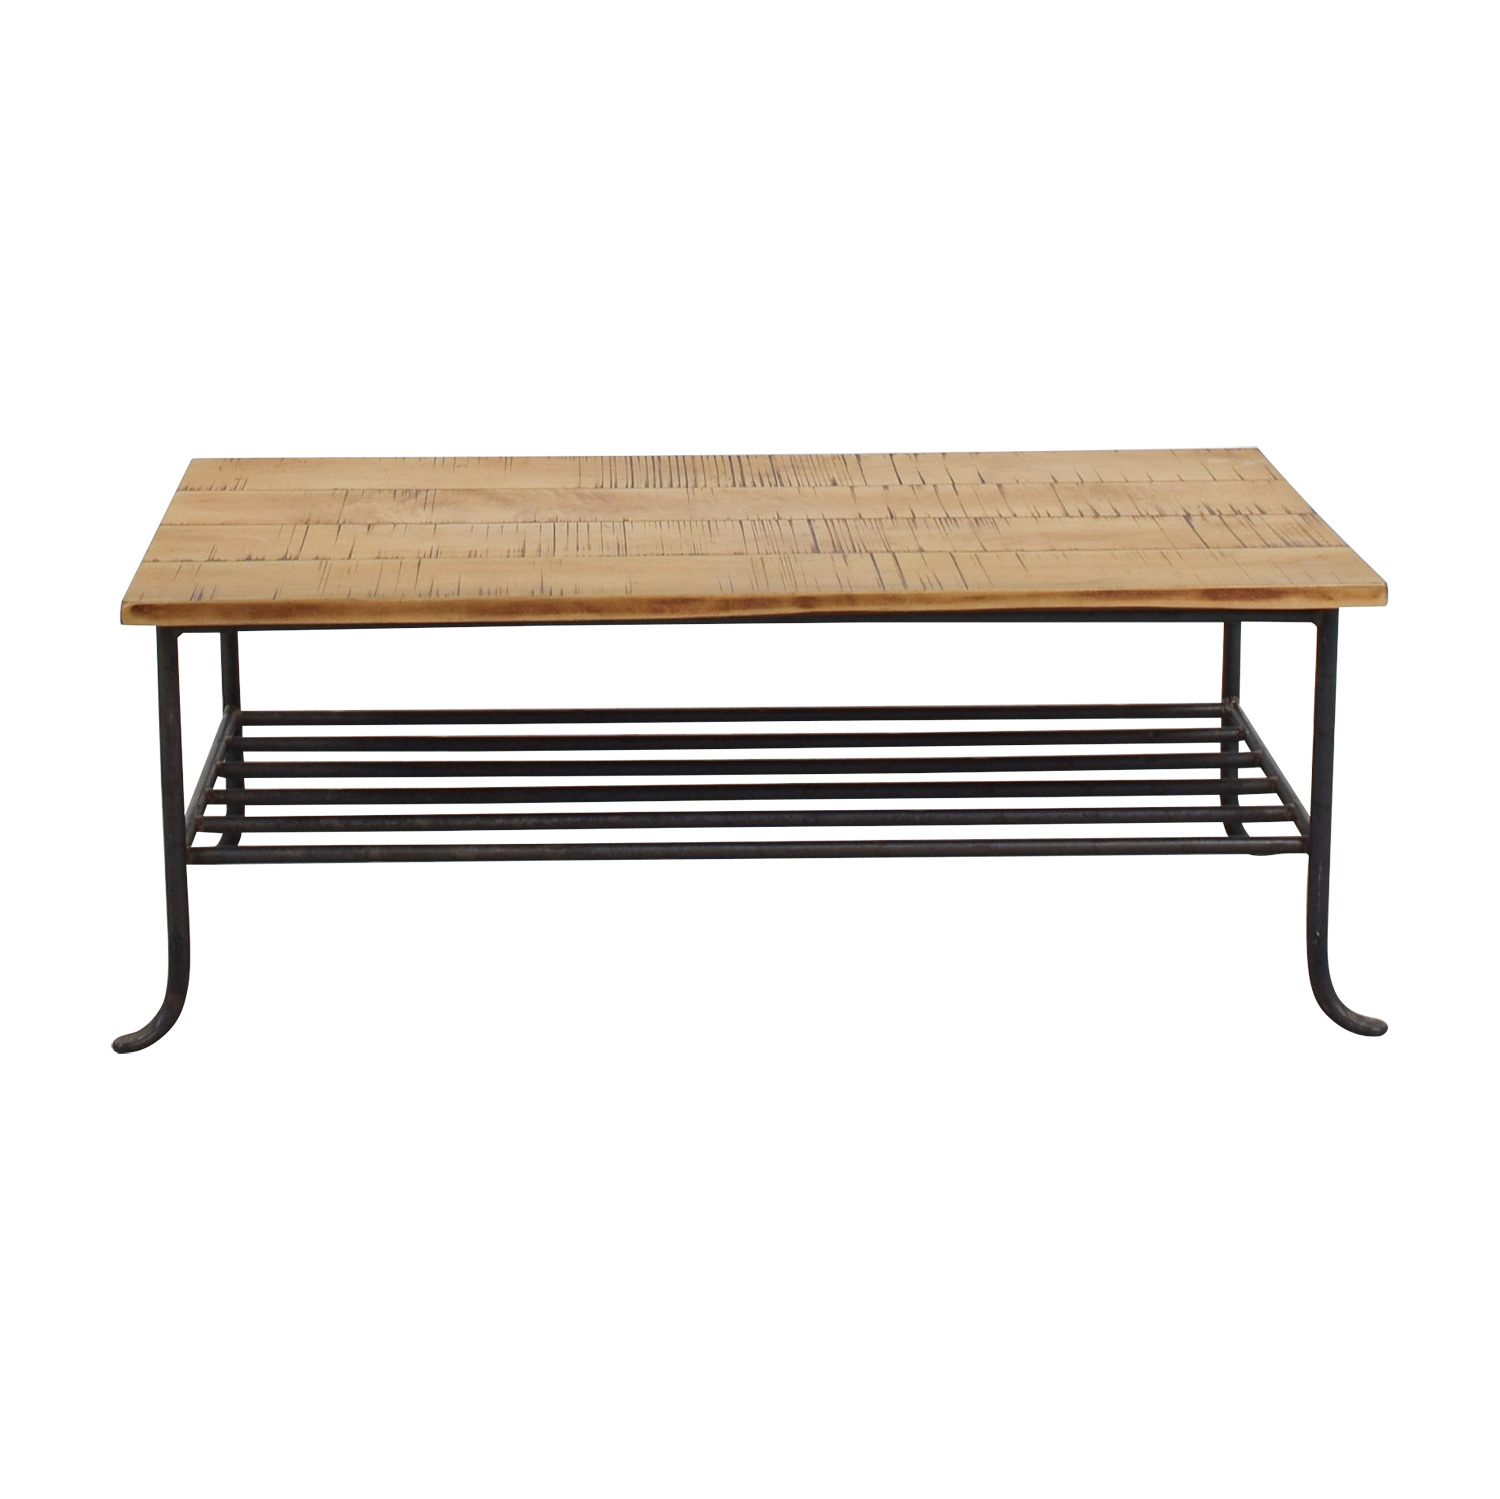 buy  Rustic Wrought Iron and Wood Coffee Table online